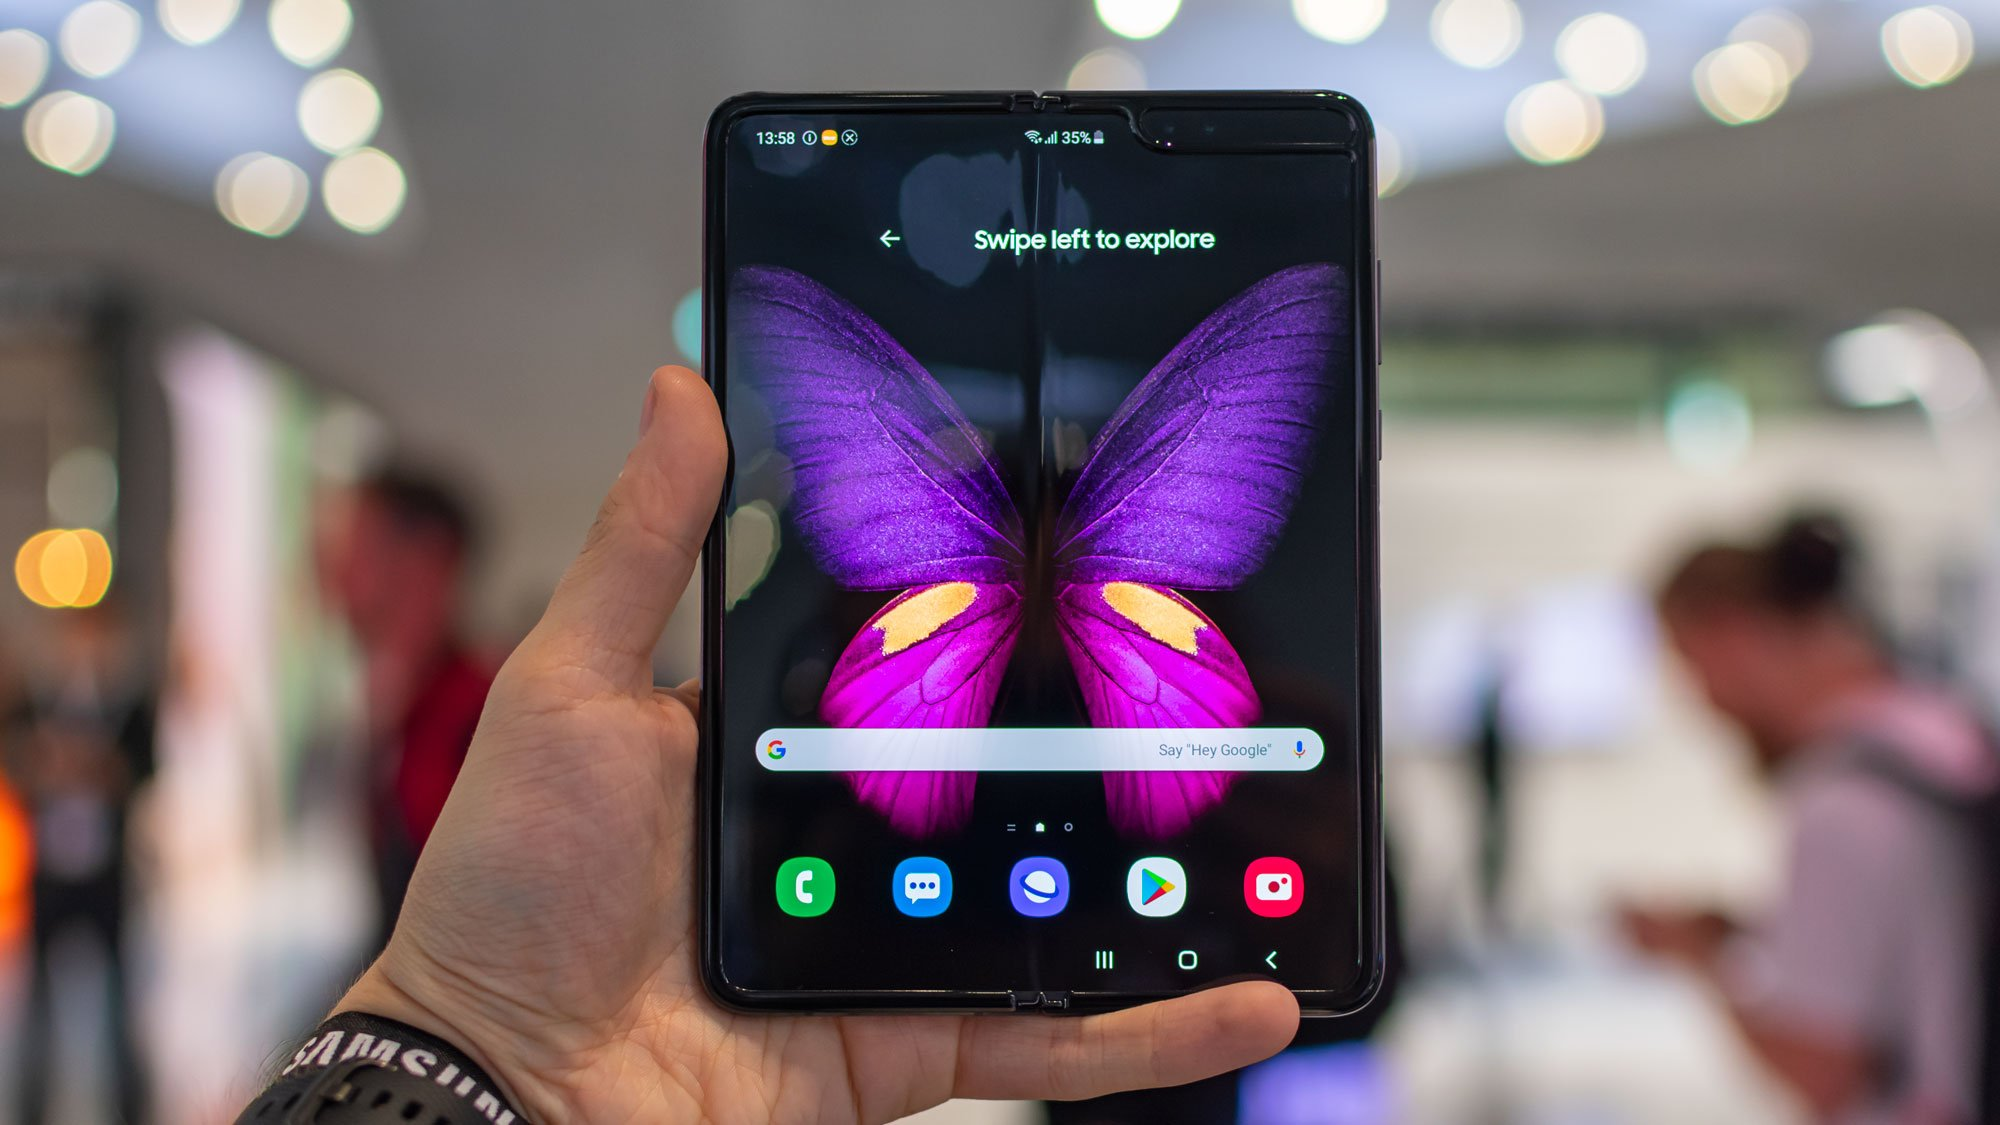 What to expect at IFA 2019: All the biggest launches from